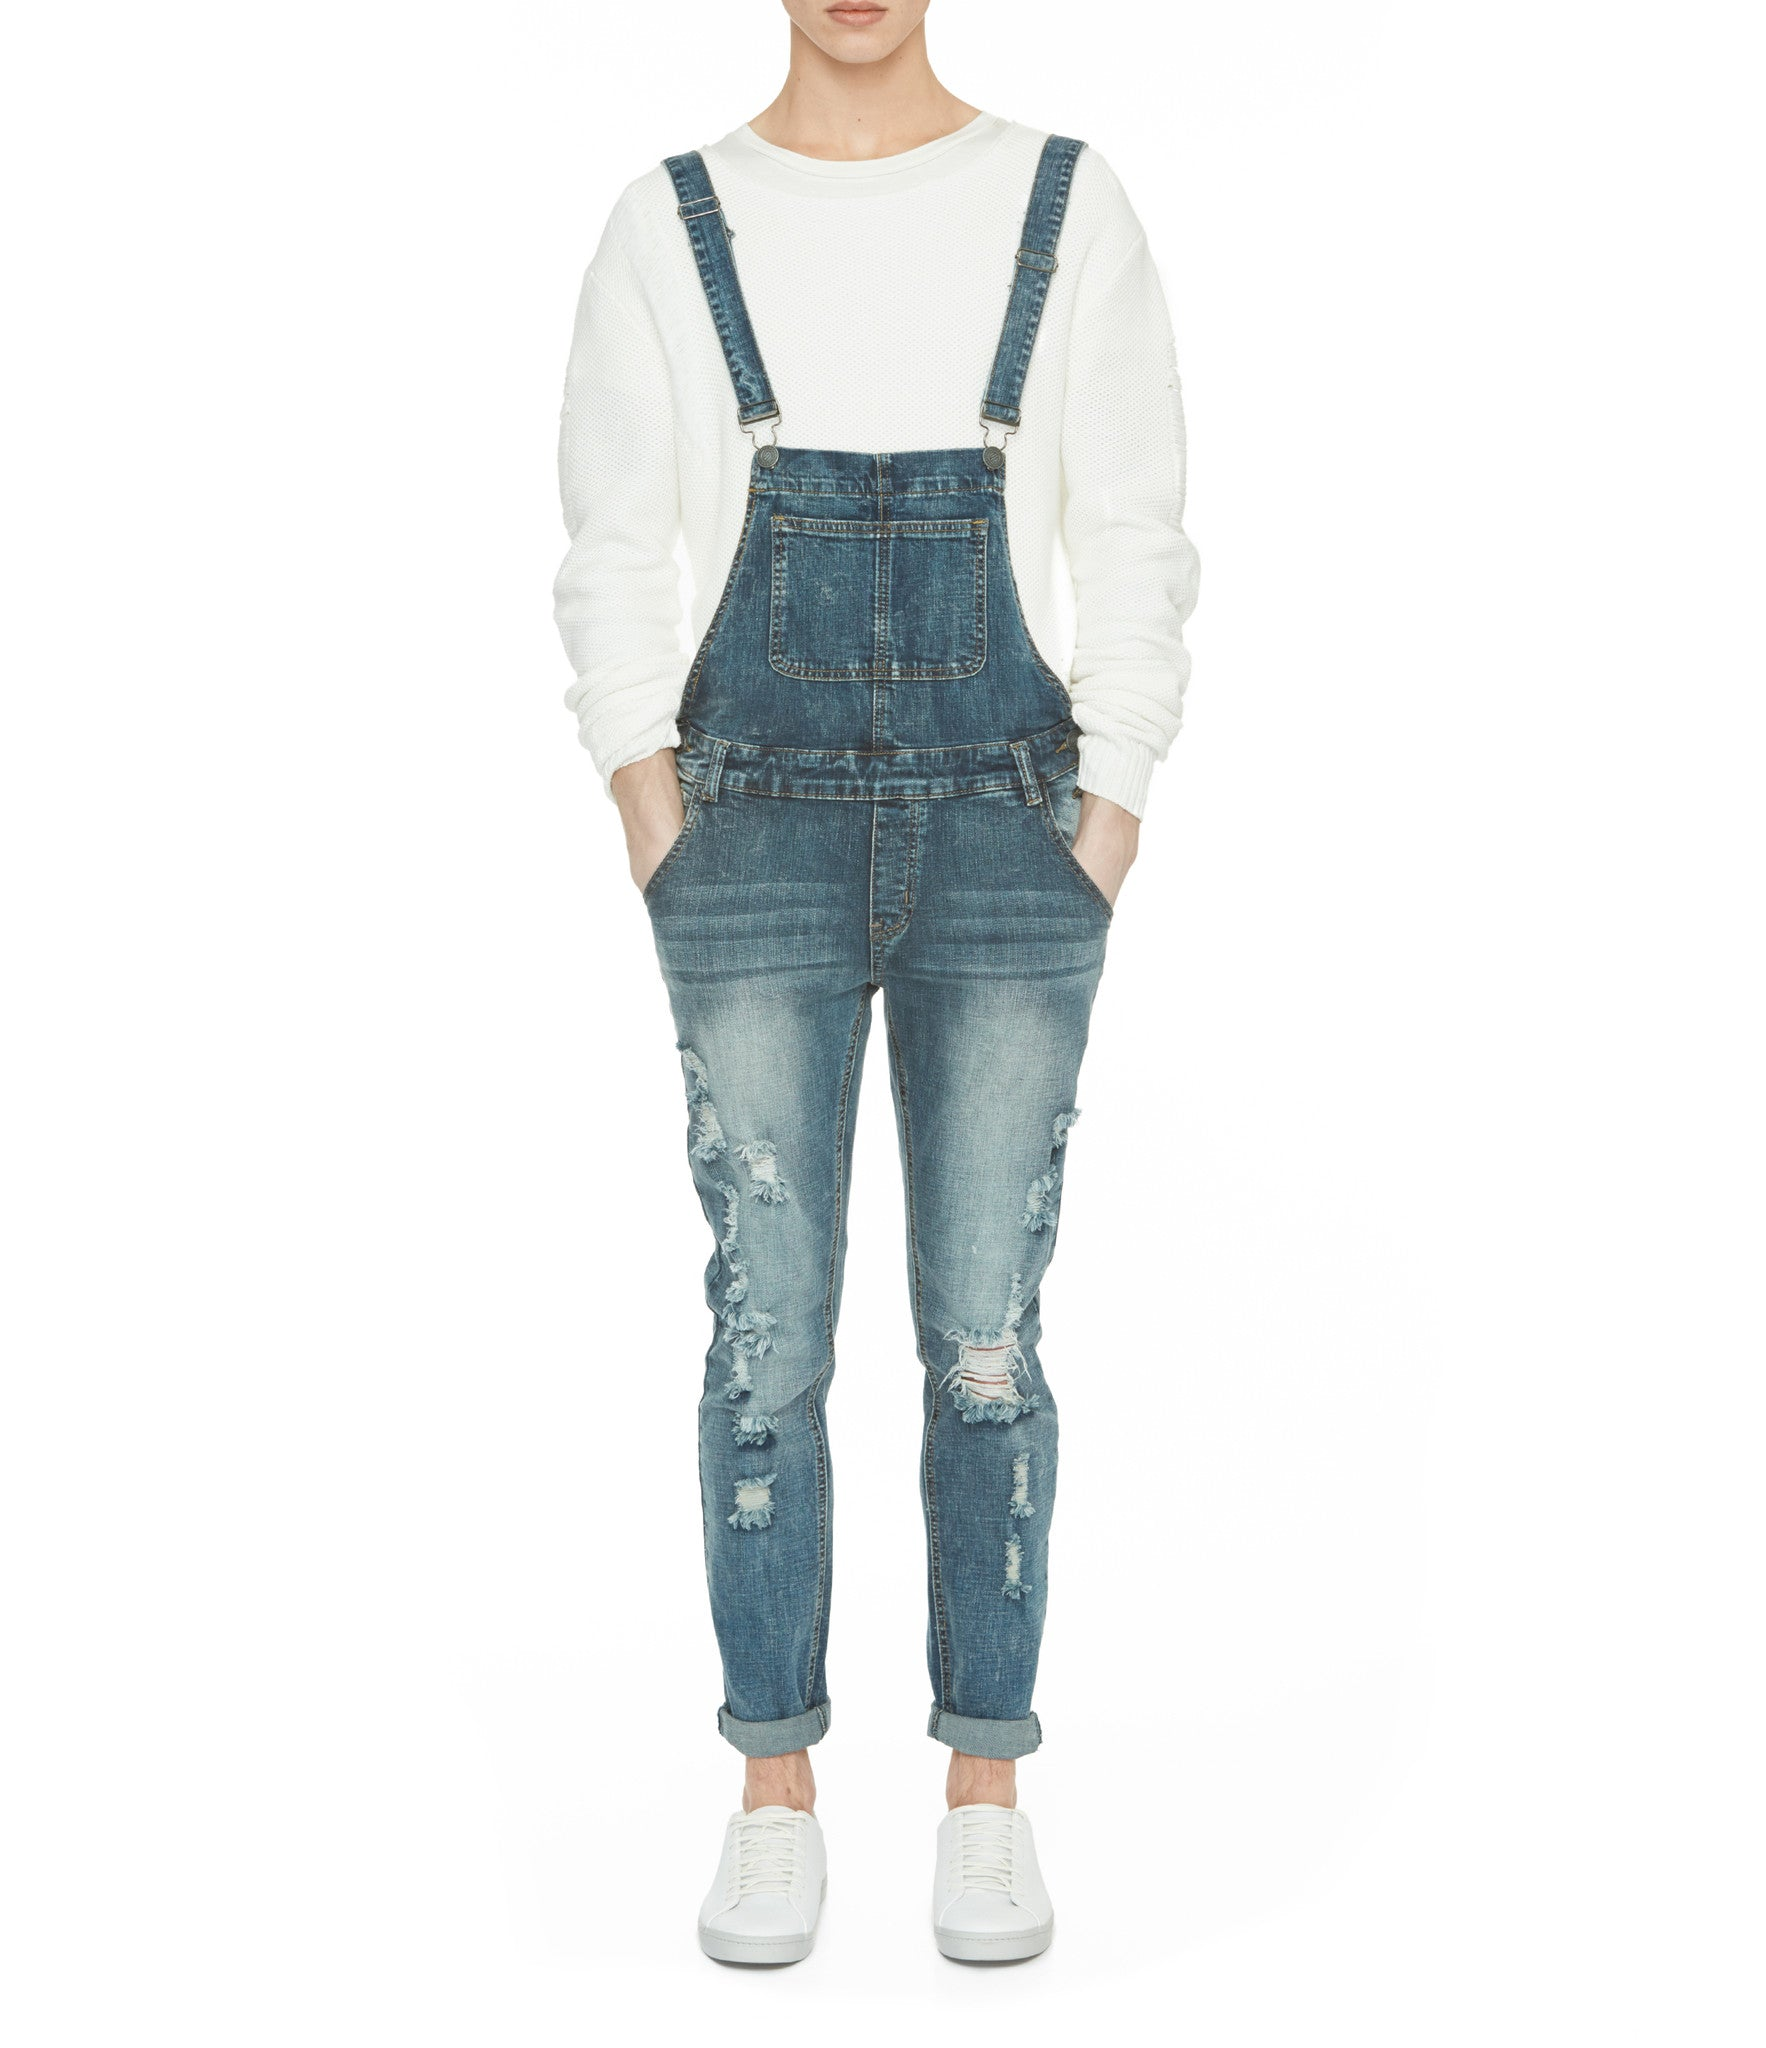 JN181 Distressed Stone Wash Dungaree Denim - Mid Blue - underated london - underatedco - 9